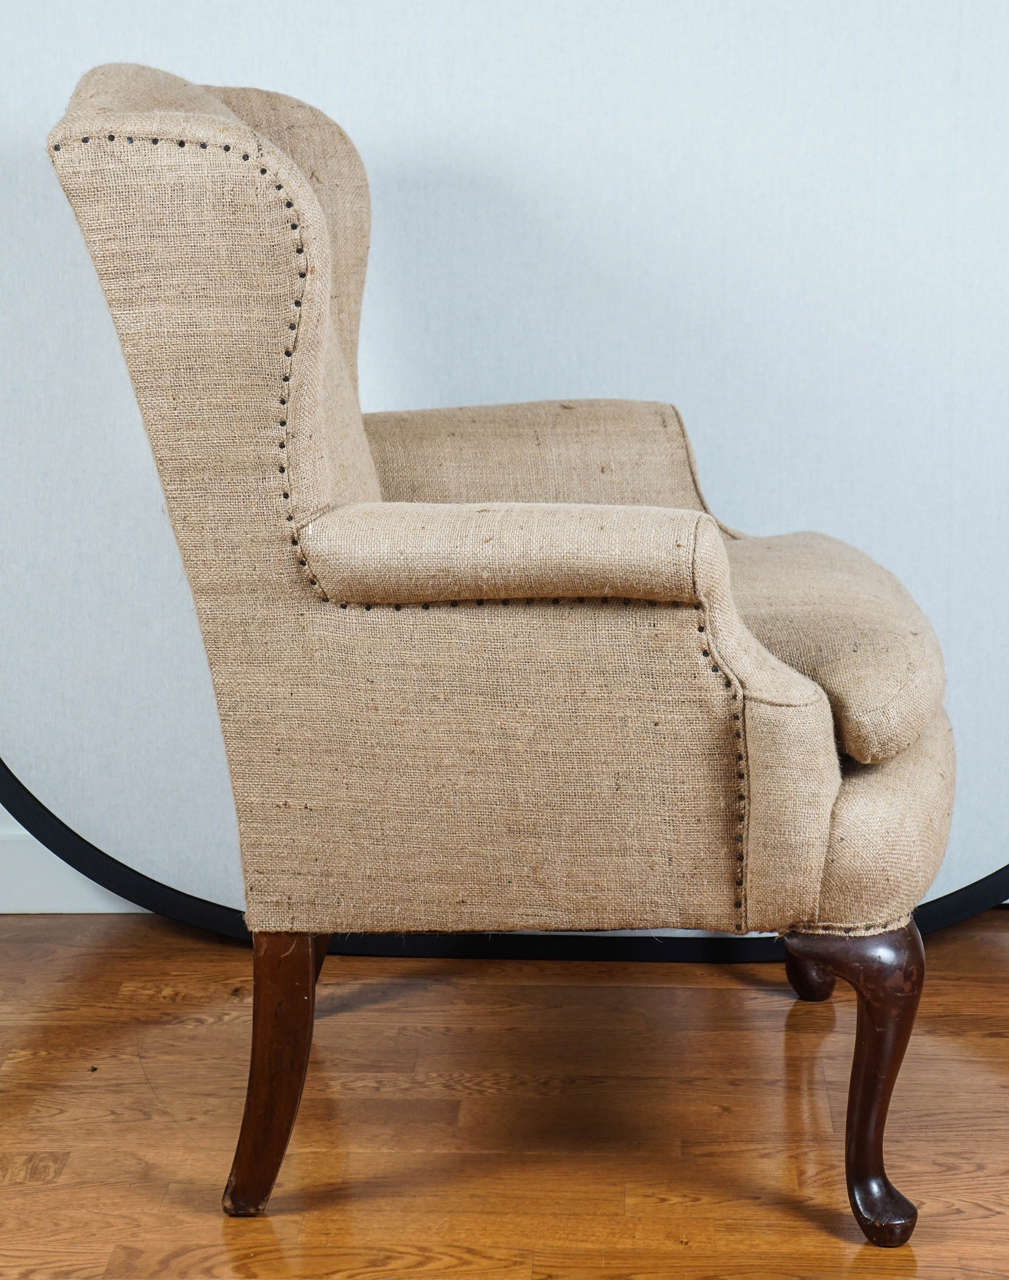 Charmant American Burlap Wingback Chair For Sale